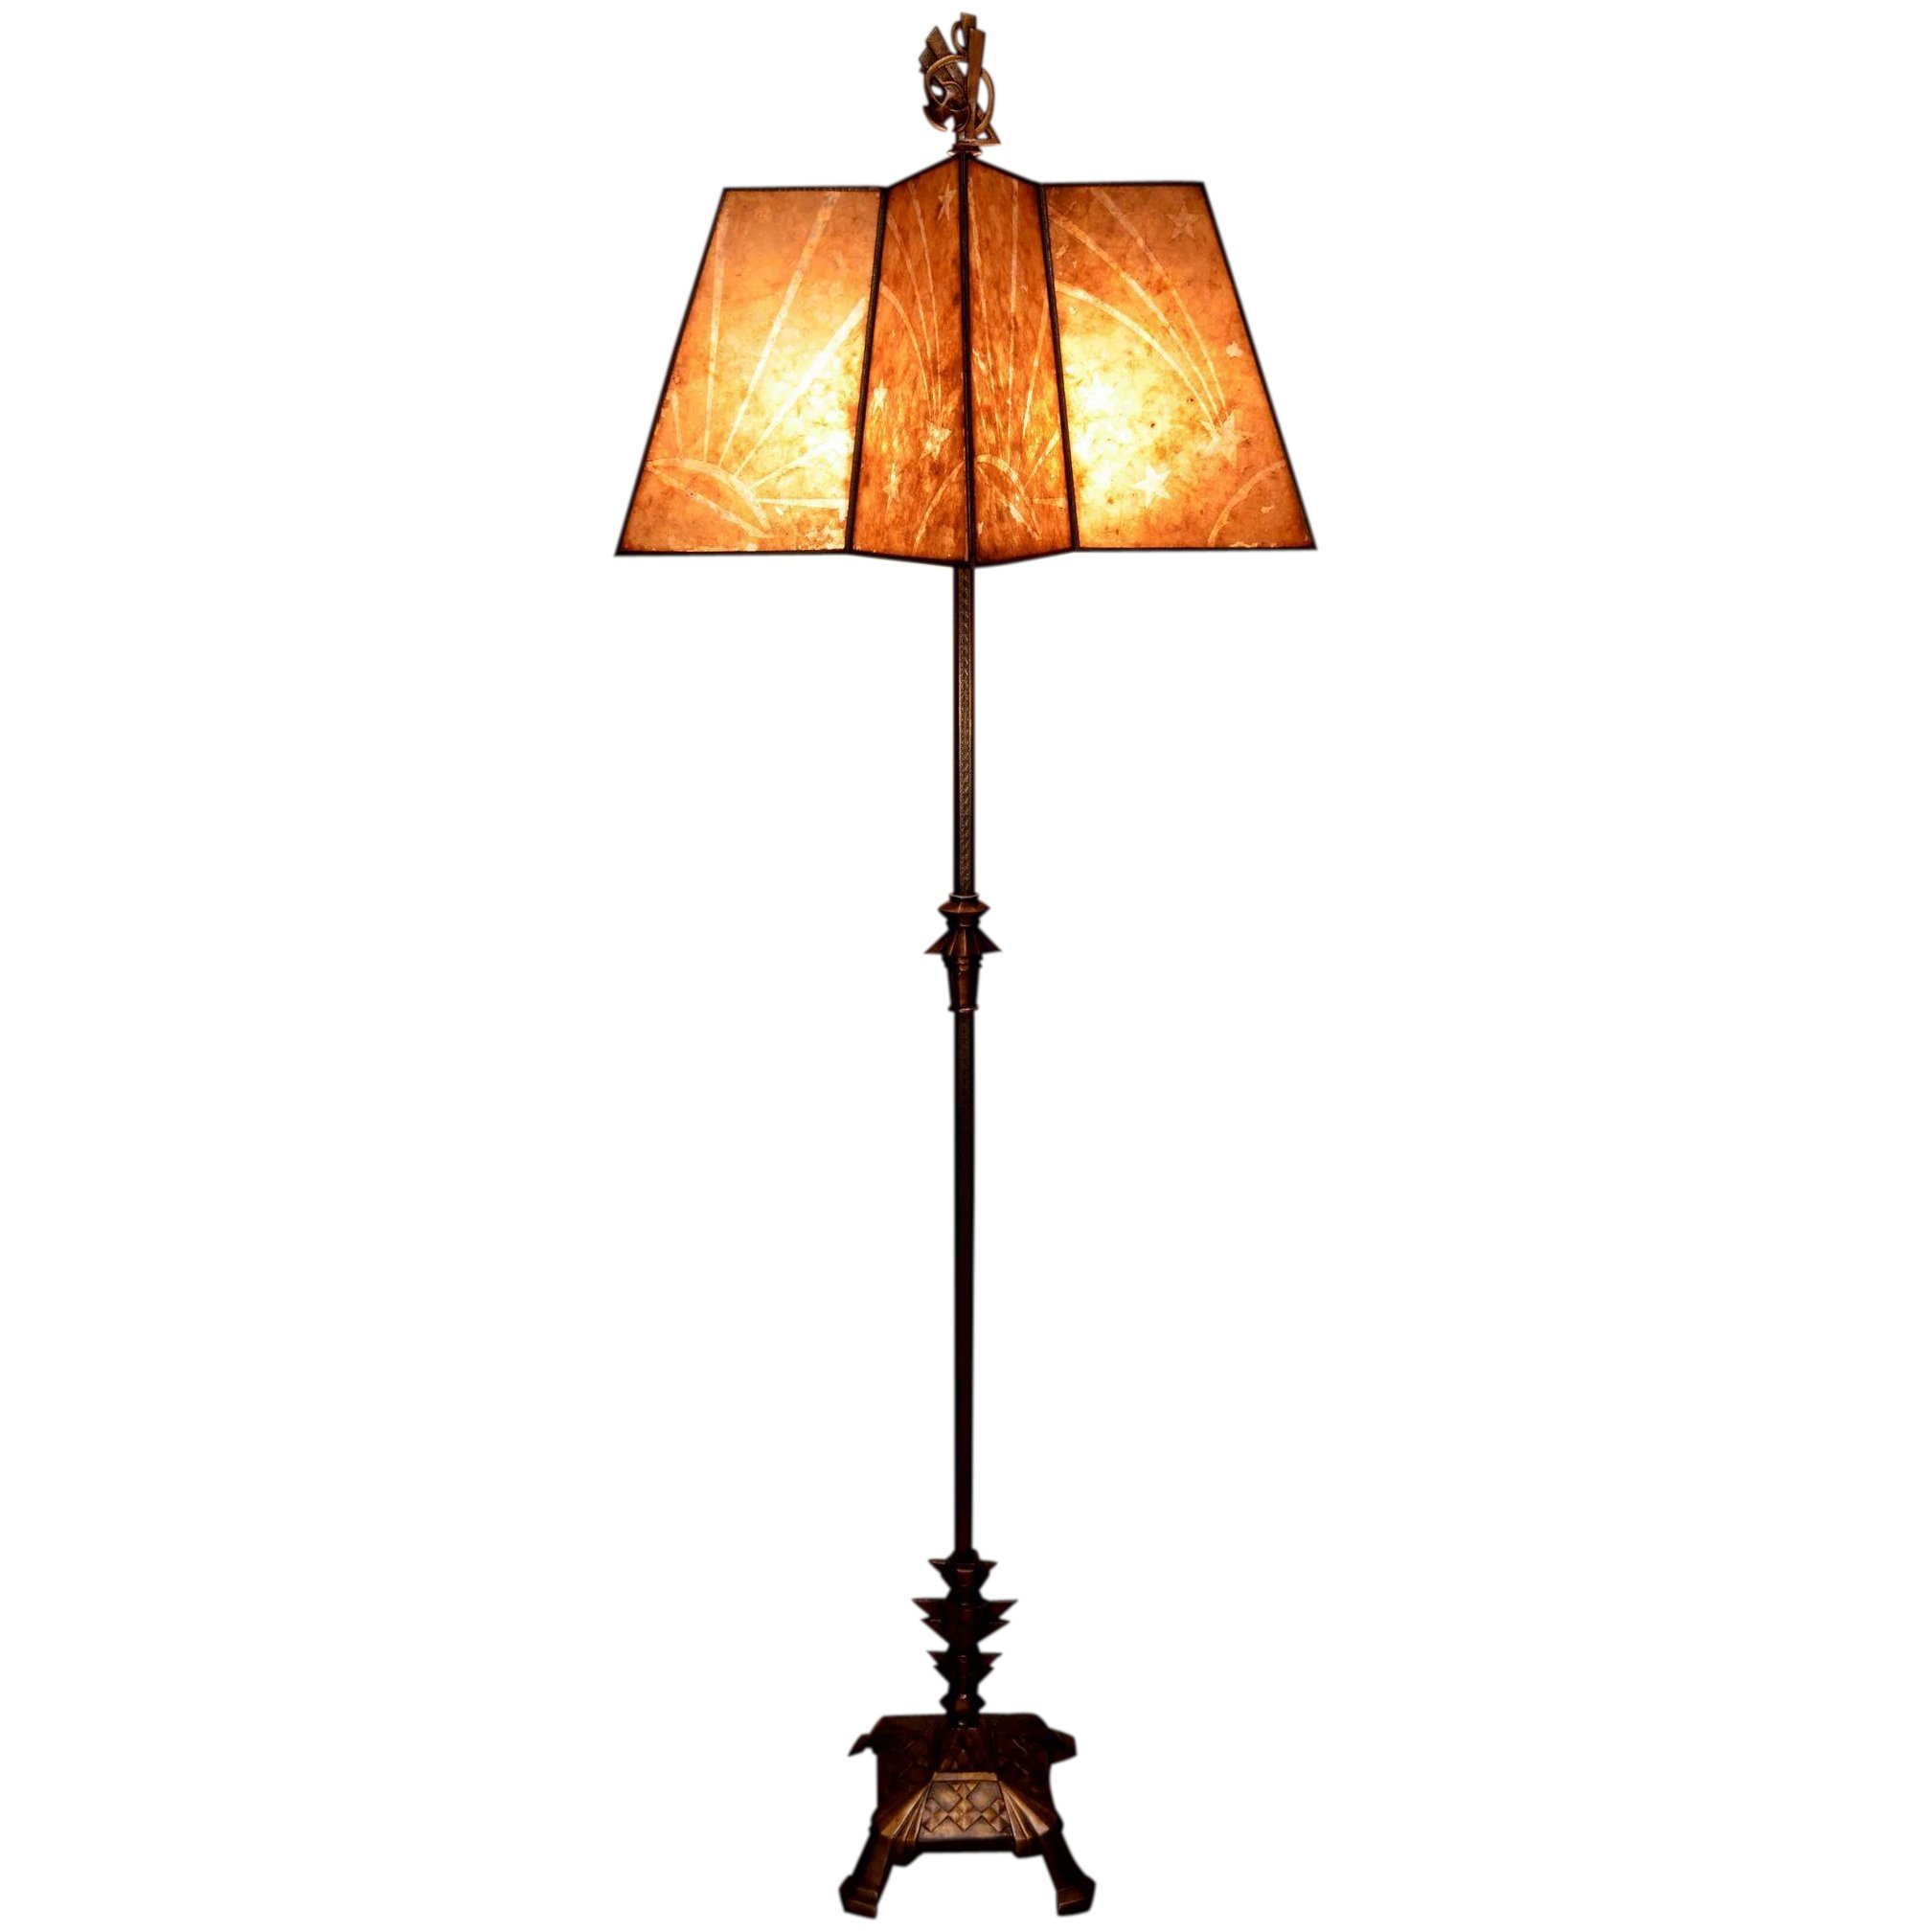 Art Deco Floor Lamp With A Star Shaped Decorated Mica Shade